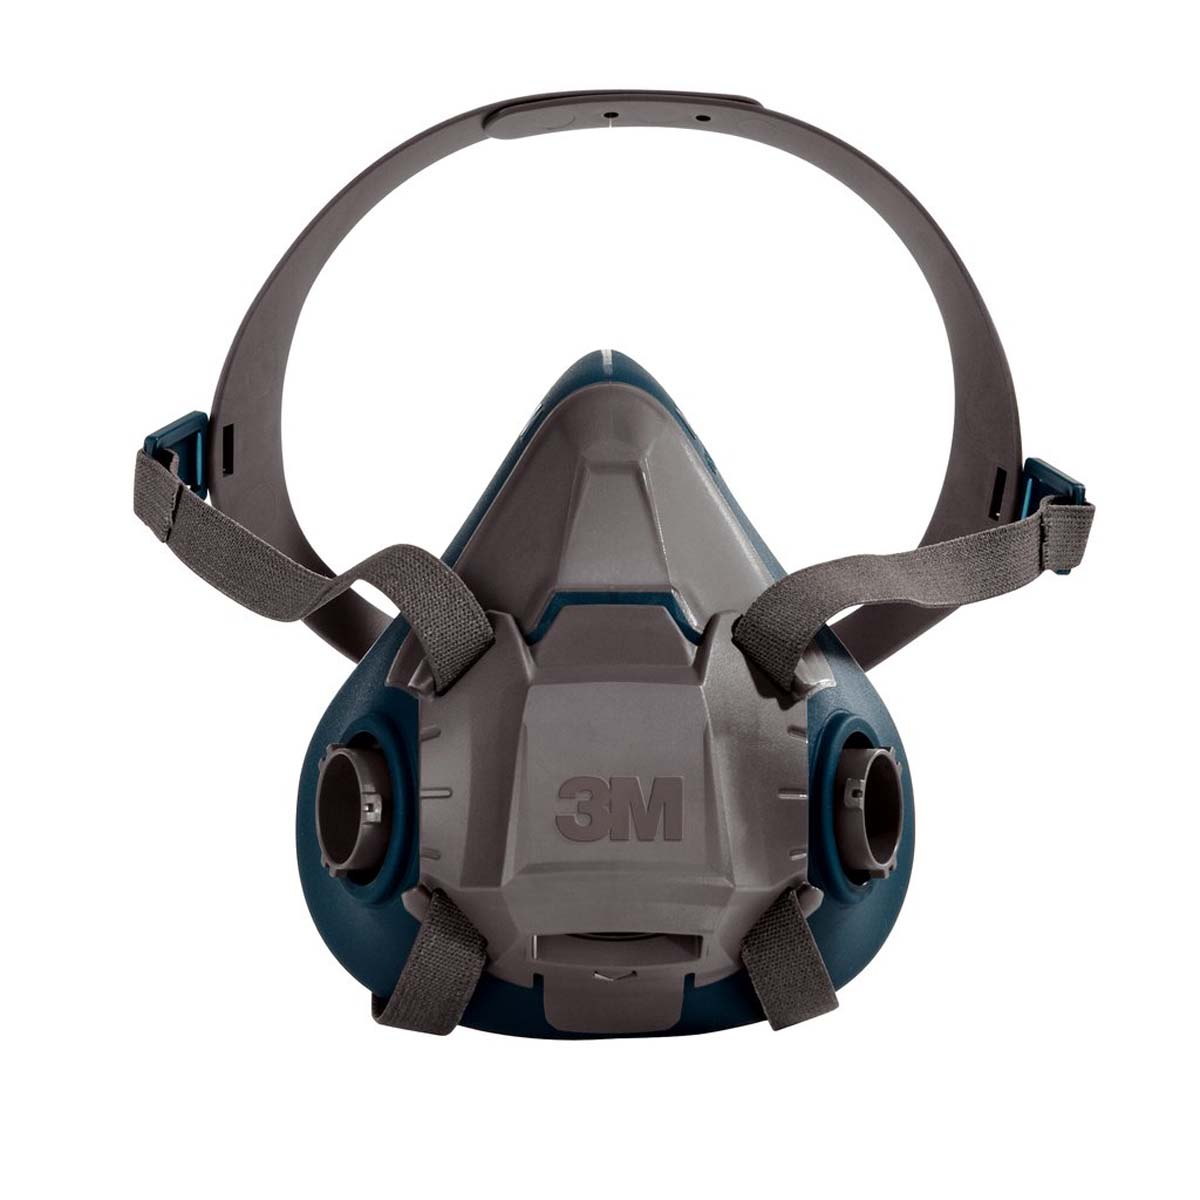 "3Mâ""¢ Rugged Comfort Half Facepiece Reusable Respirator 6502/49489 Medium"